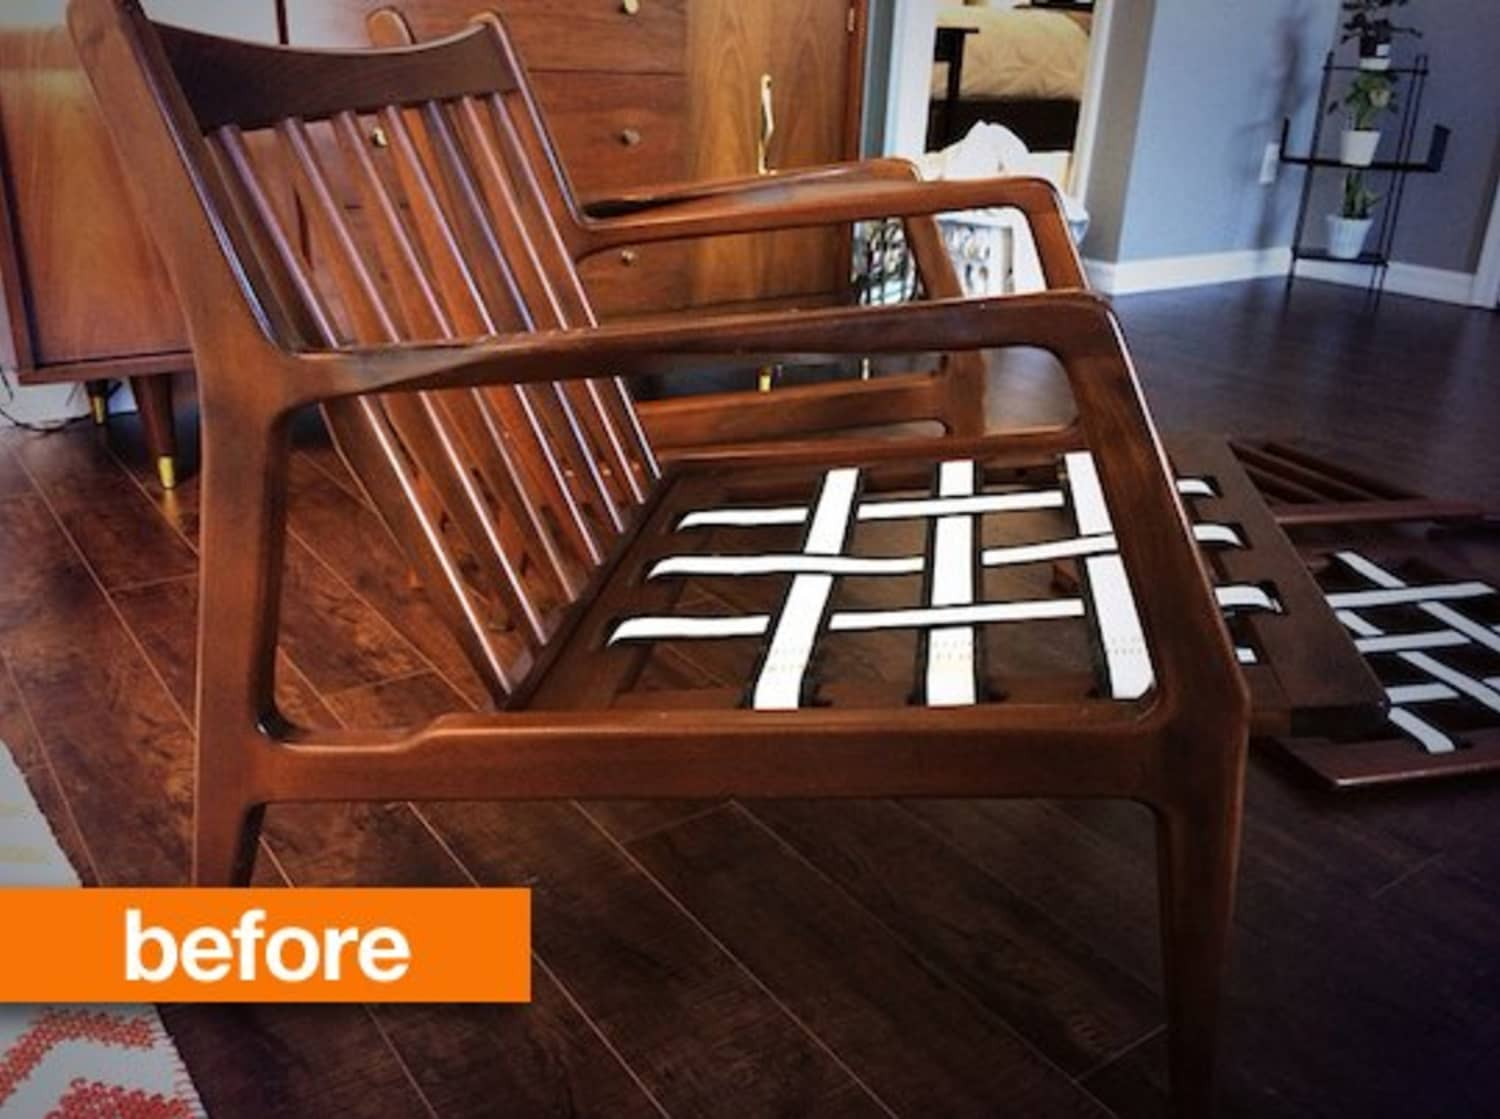 Before & After: Kaycee's Customized Kofod Larsen Chairs